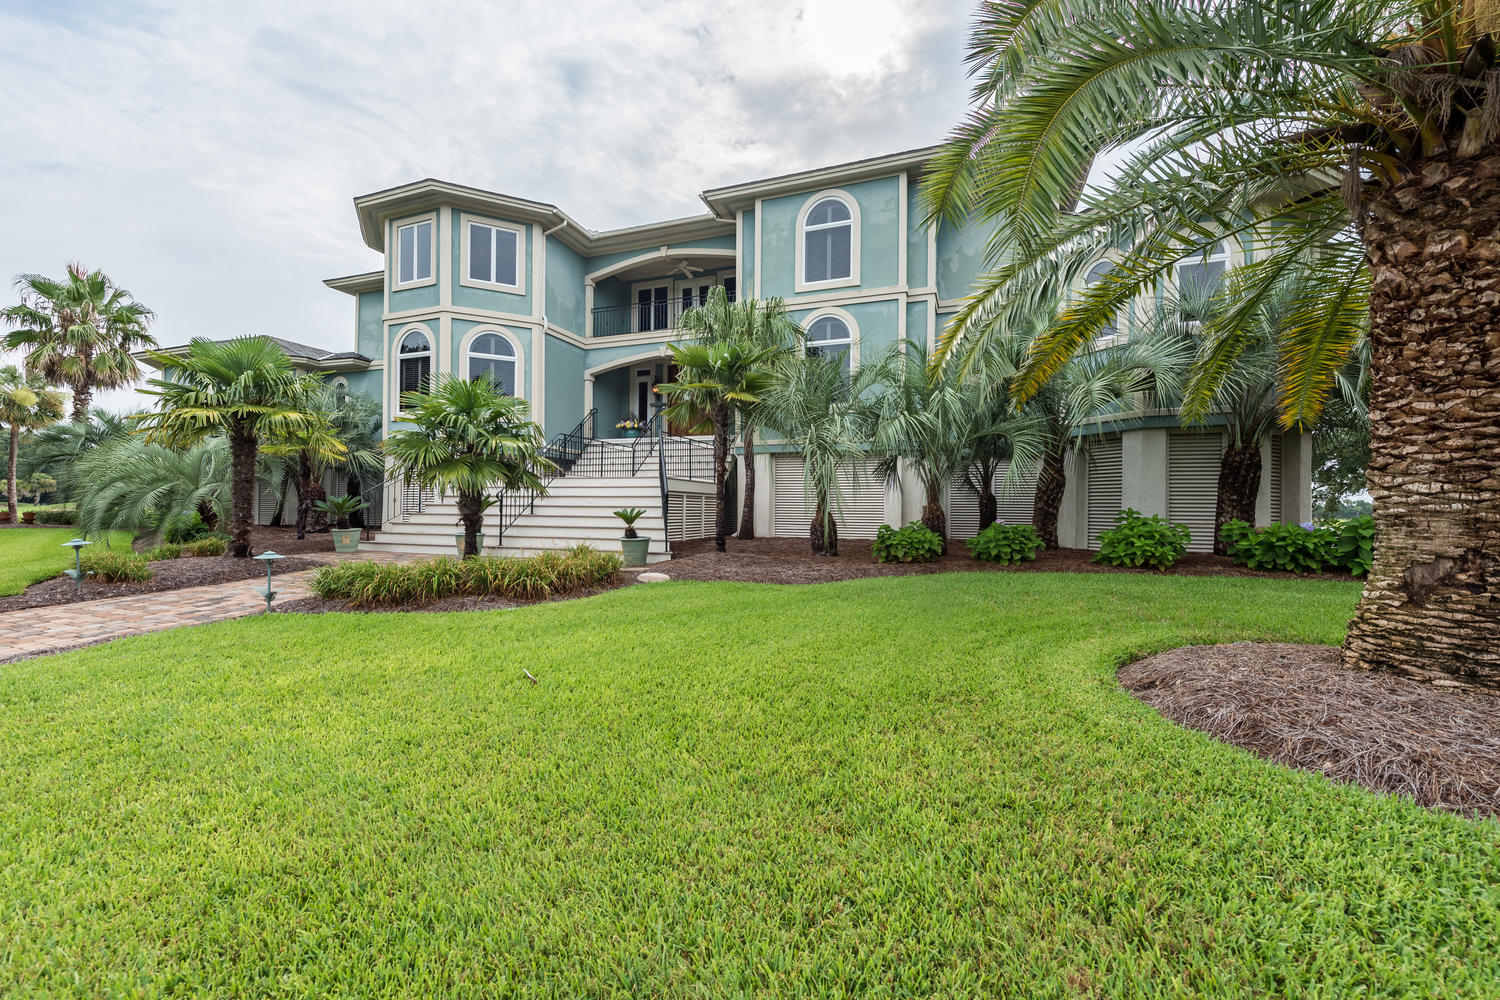 Photo of 4209 Victory Pointe Dr, Mt Pleasant, SC 29466